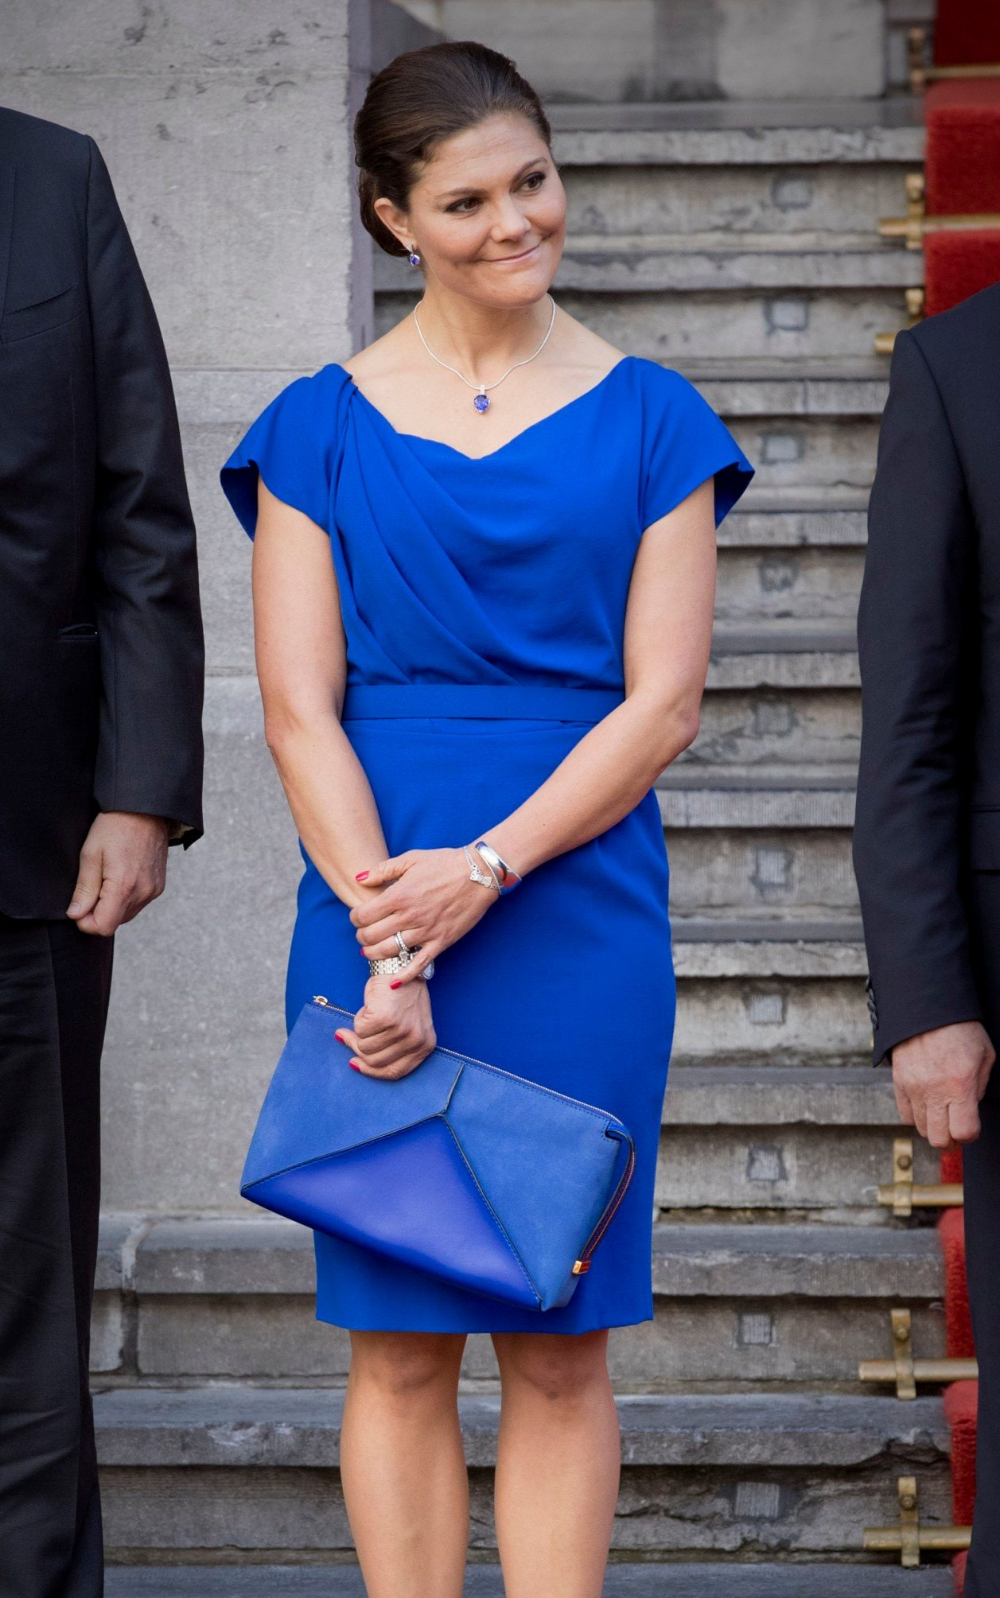 As Crown Princess Victoria of Sweden celebrates her 40th